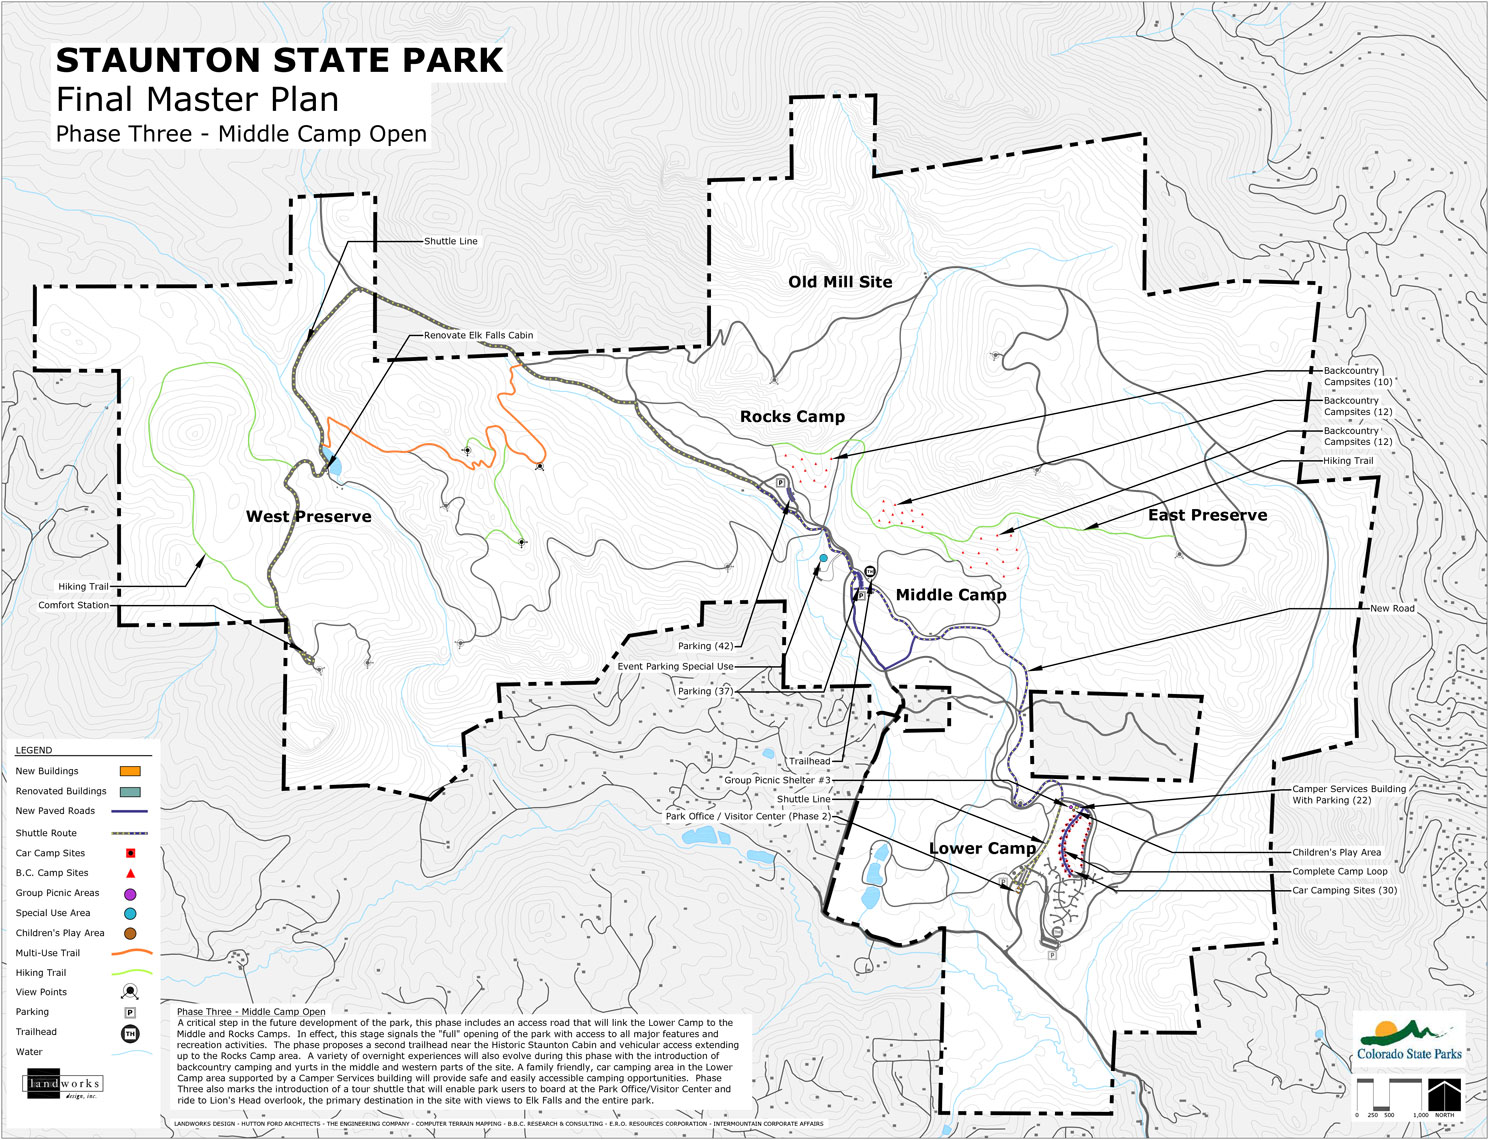 LWD-Color_Phase 3_36x48.mcl (P:\0722-Staunton State Park\CAD\Final MP\LWD-Color.dwg)